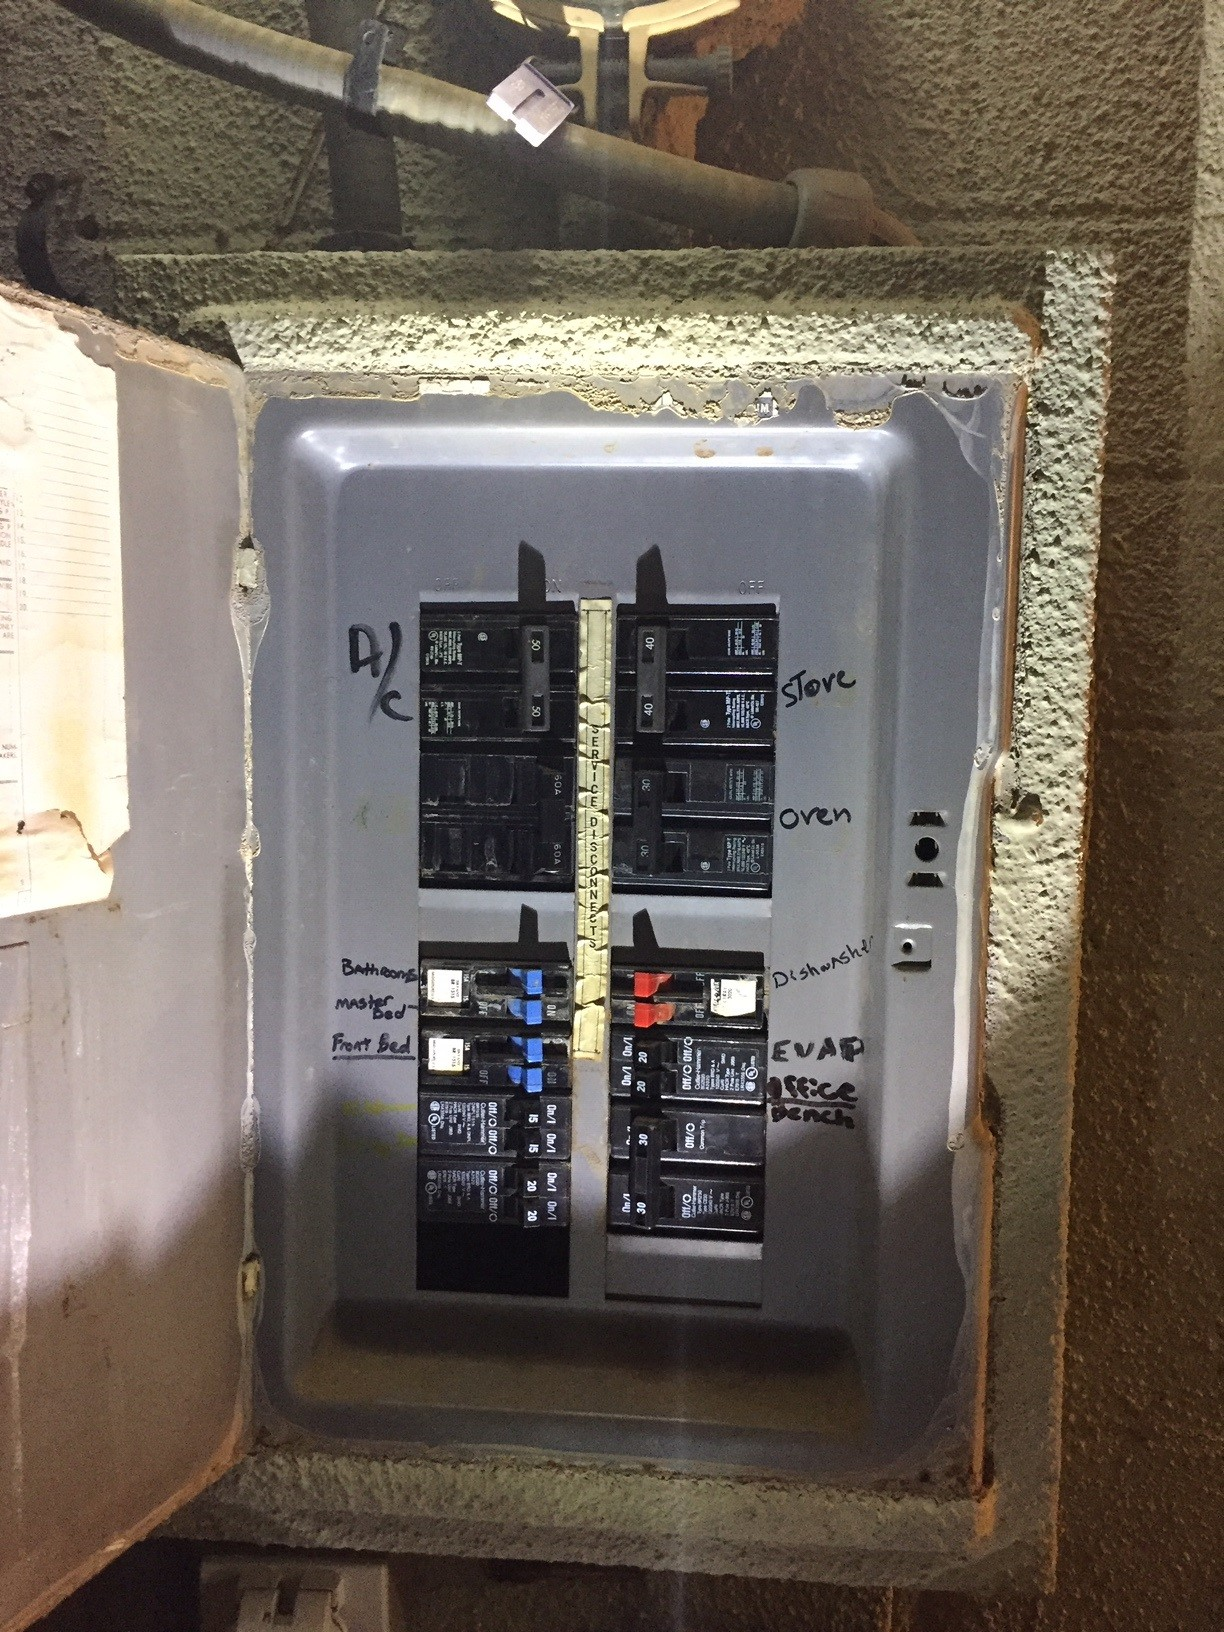 How to Wire 60 Amp Disconnect Can I Add A Subpanel Home Improvement Stack Exchange Of How to Wire 60 Amp Disconnect